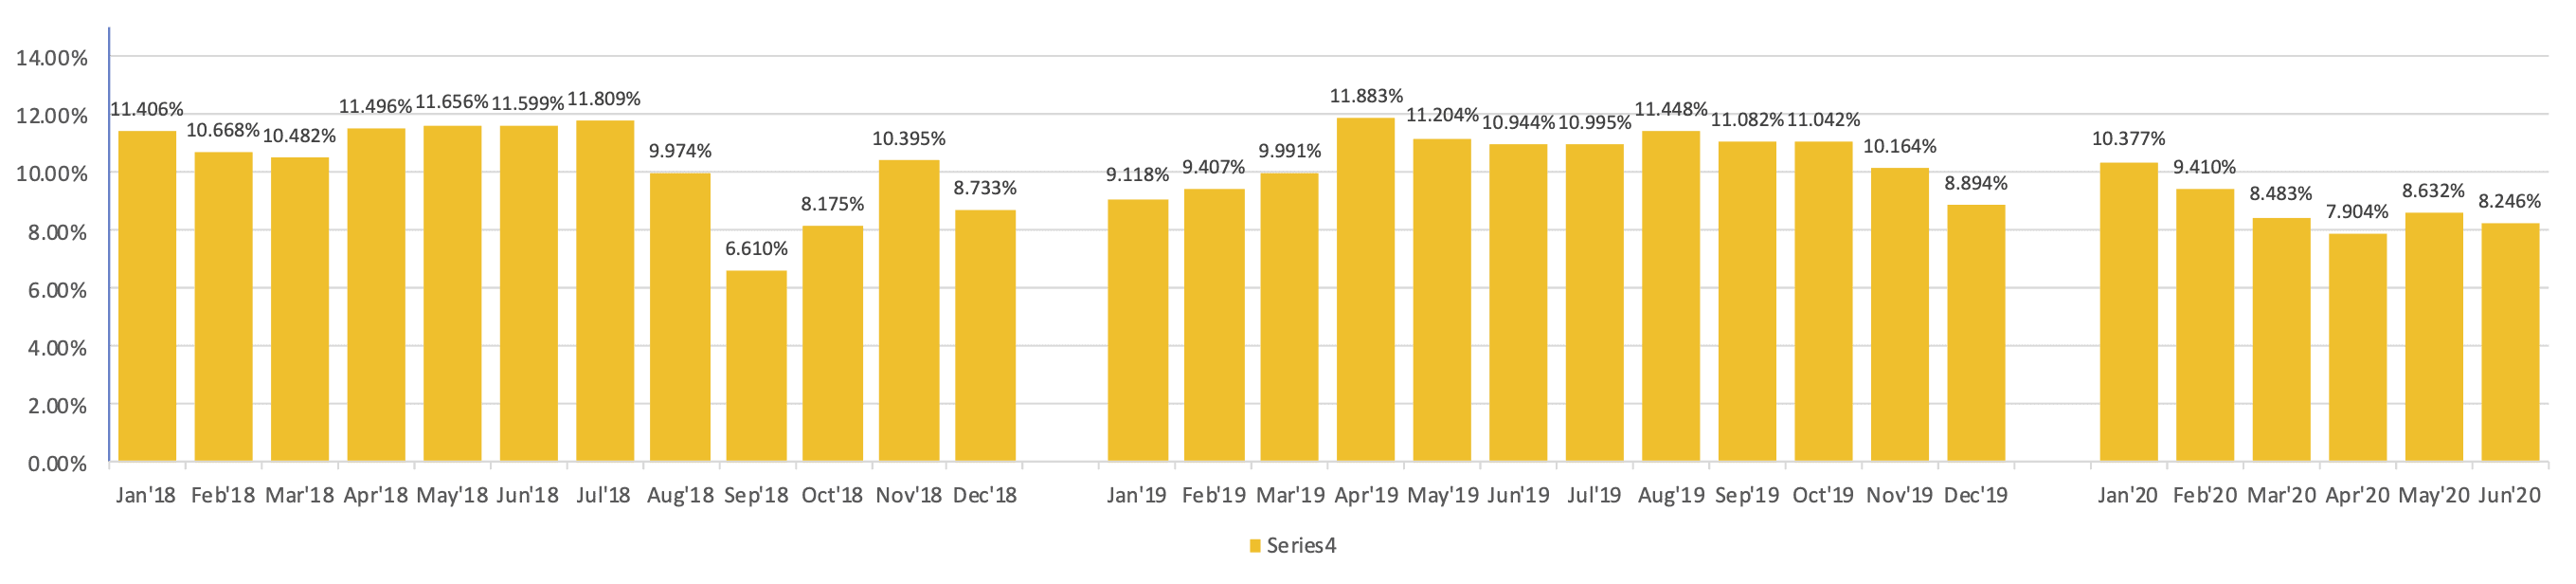 Mintos interest rates (self-calculated)